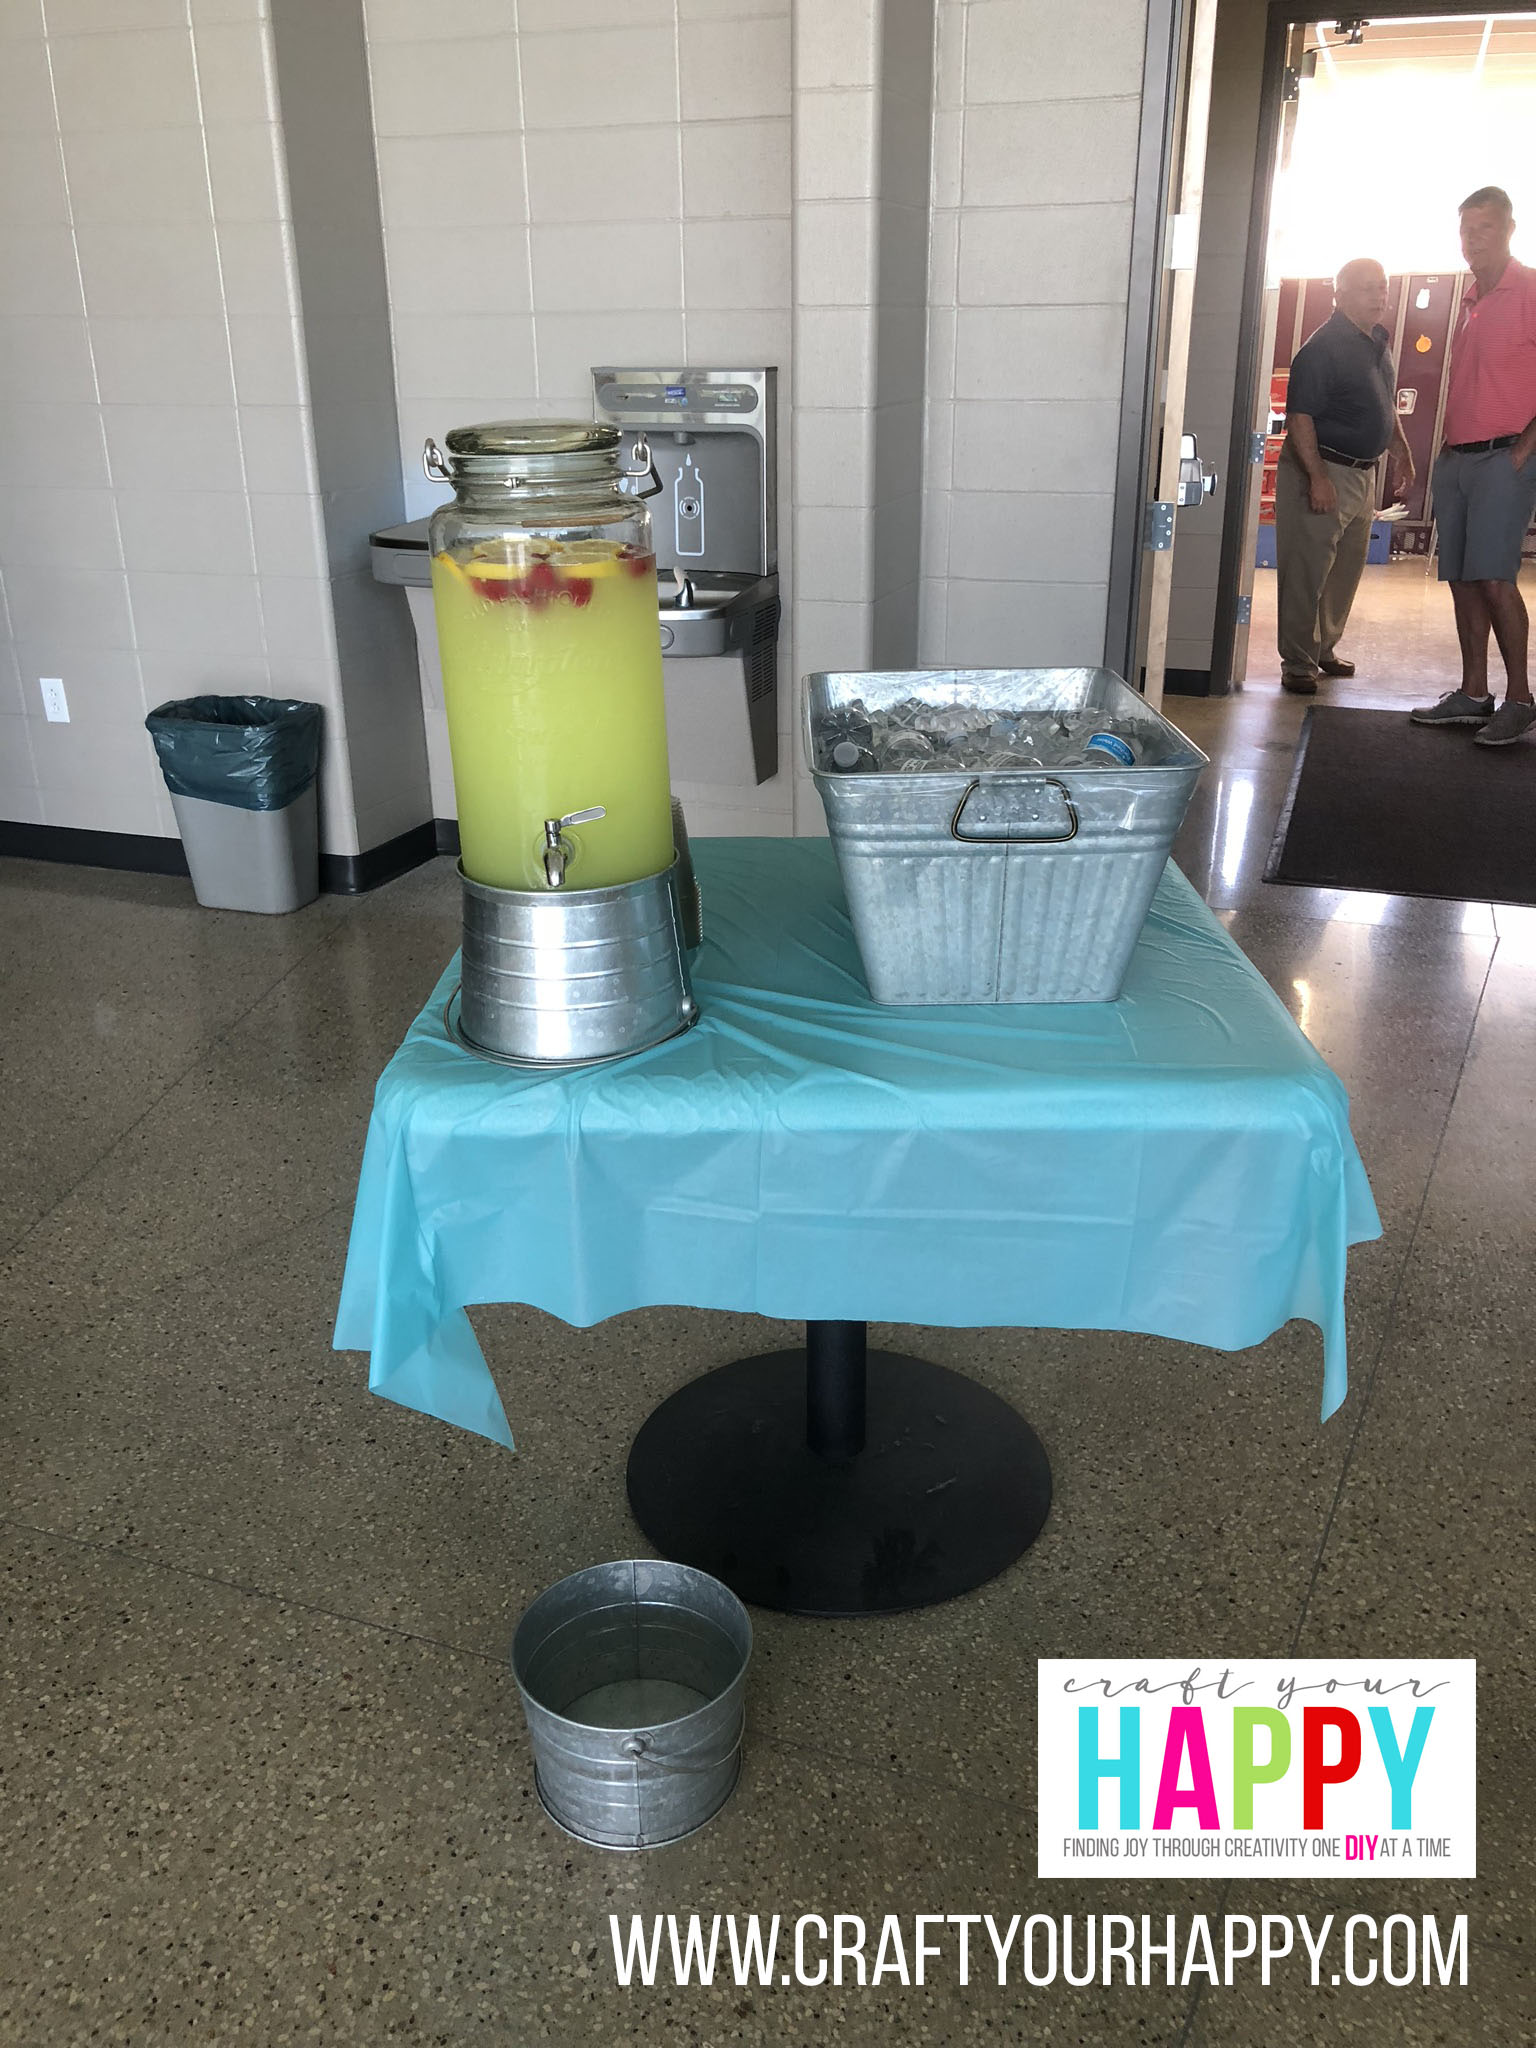 Craft Your Happy - Grad Party On A Budget - Lemonade And Water Station